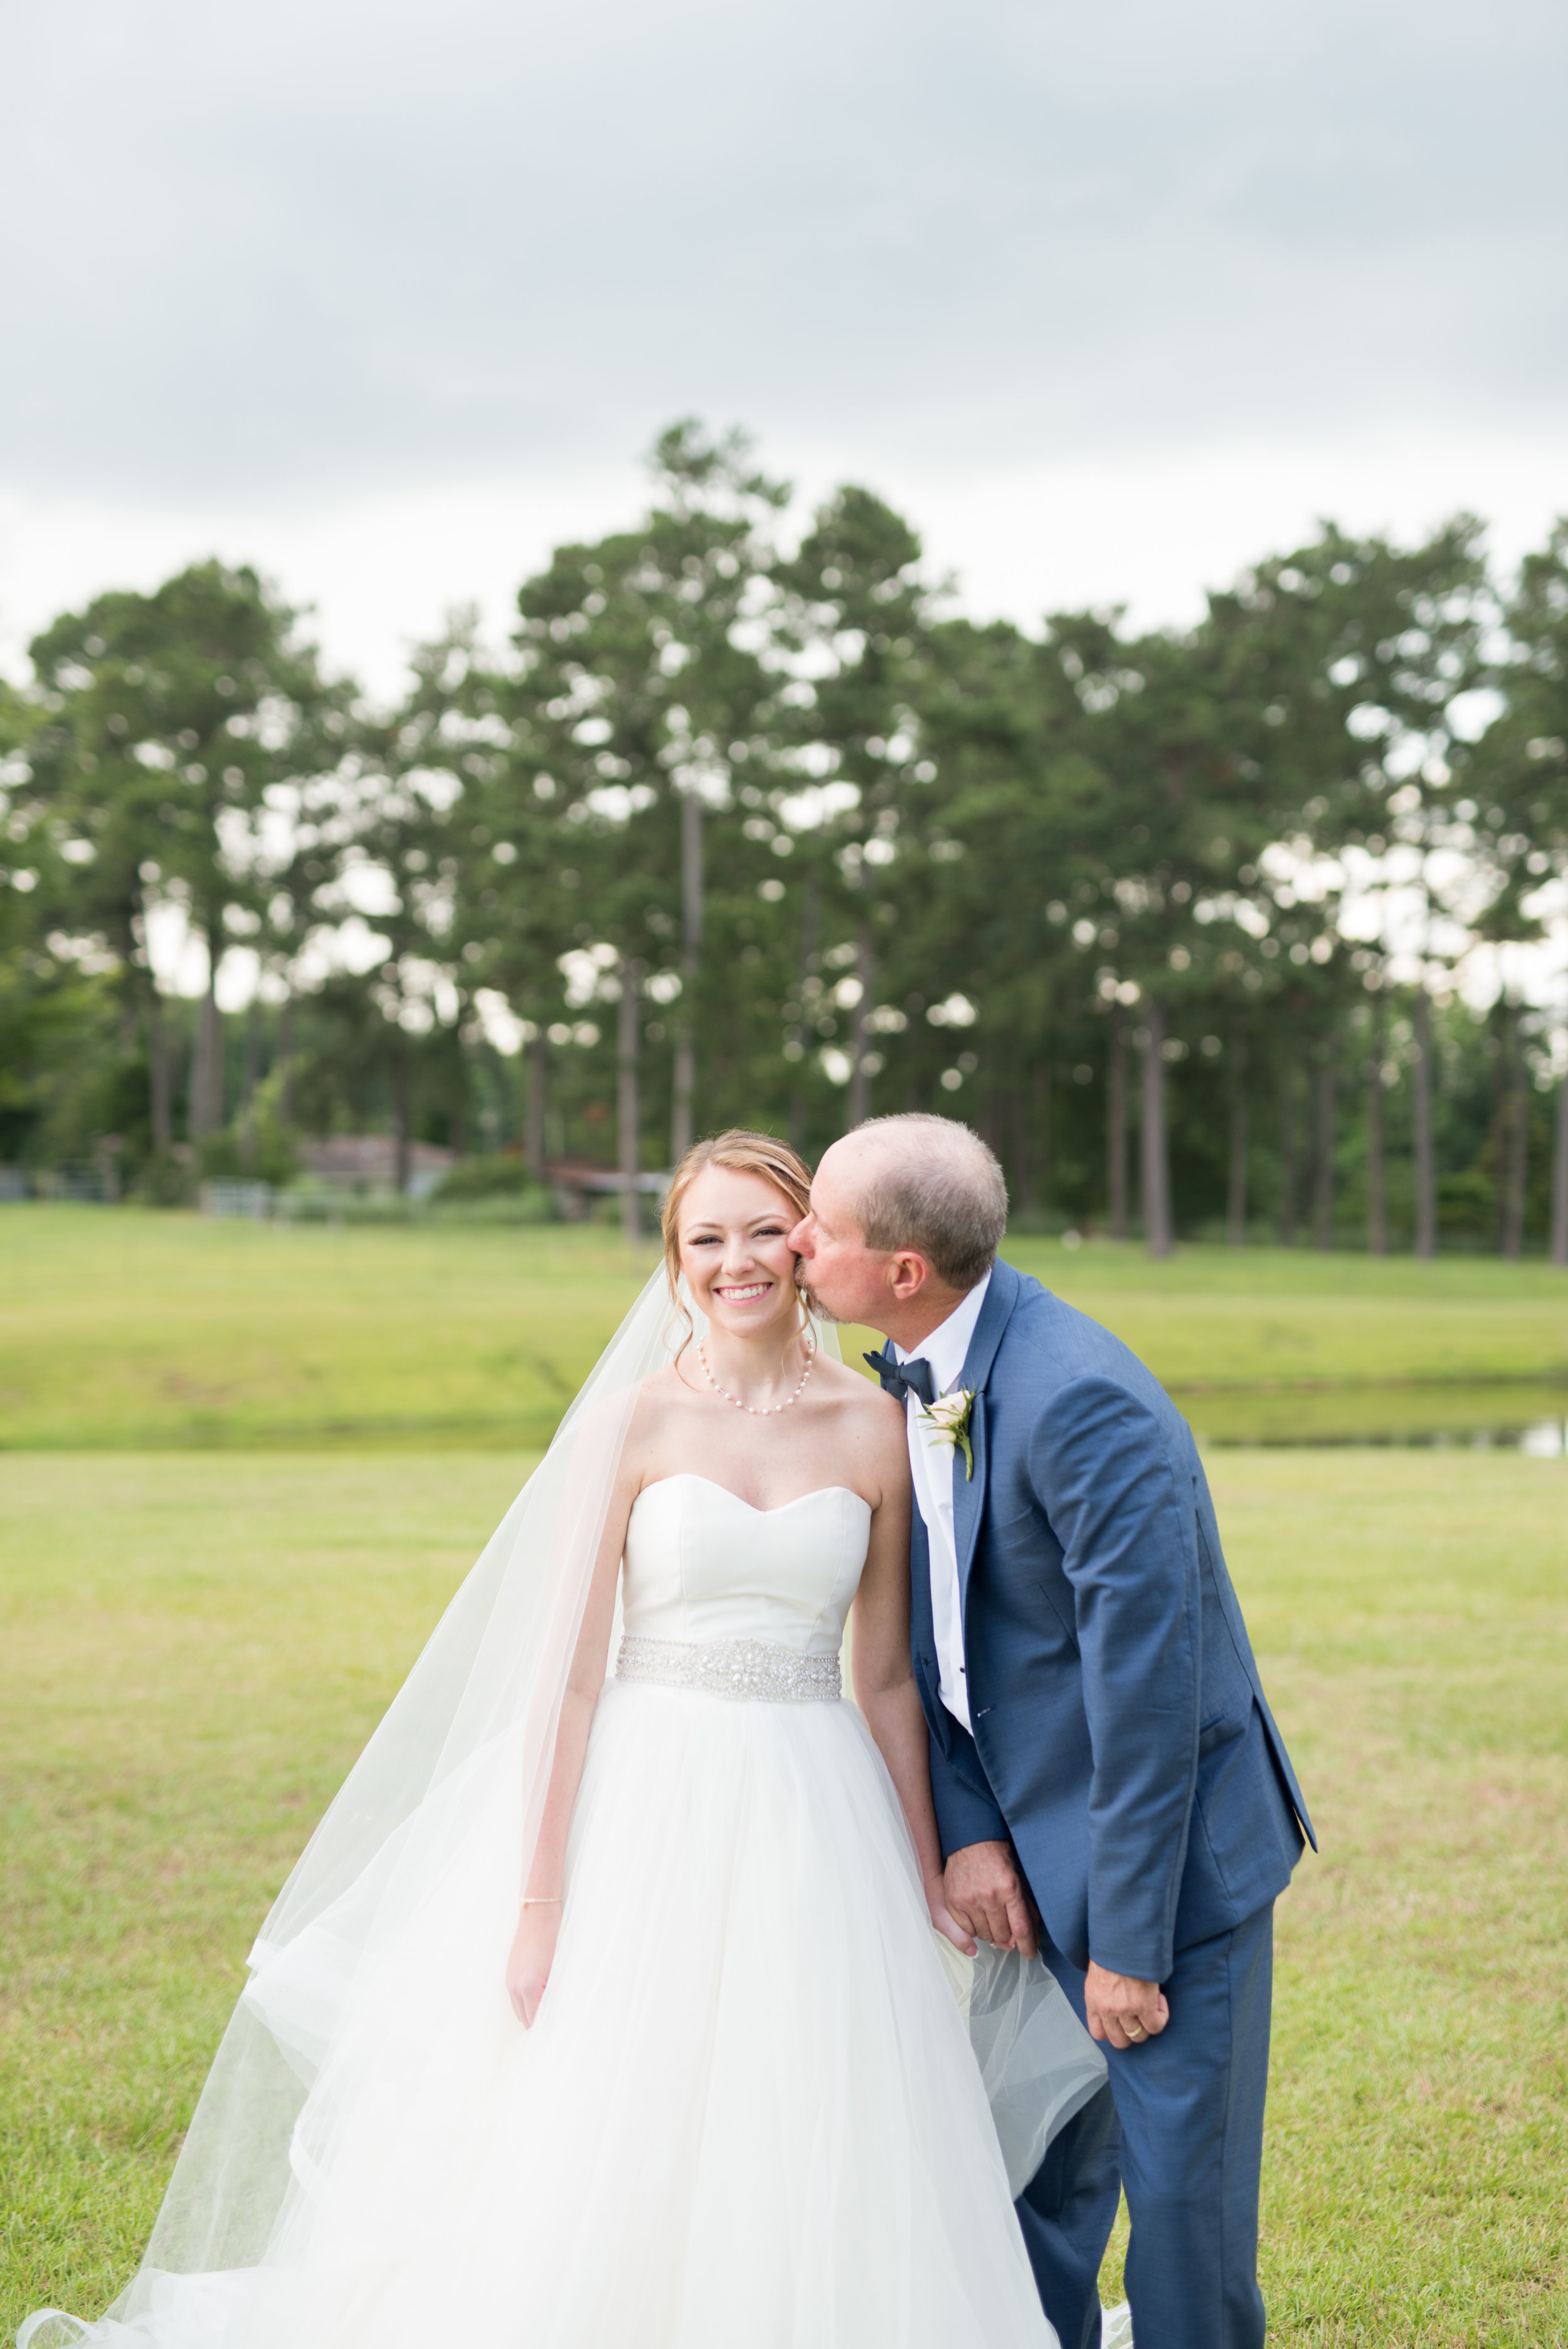 The Barn at Bridlewood wedding in Hattiesburg, Mississippi (MS) in June | Bride and bride's dad